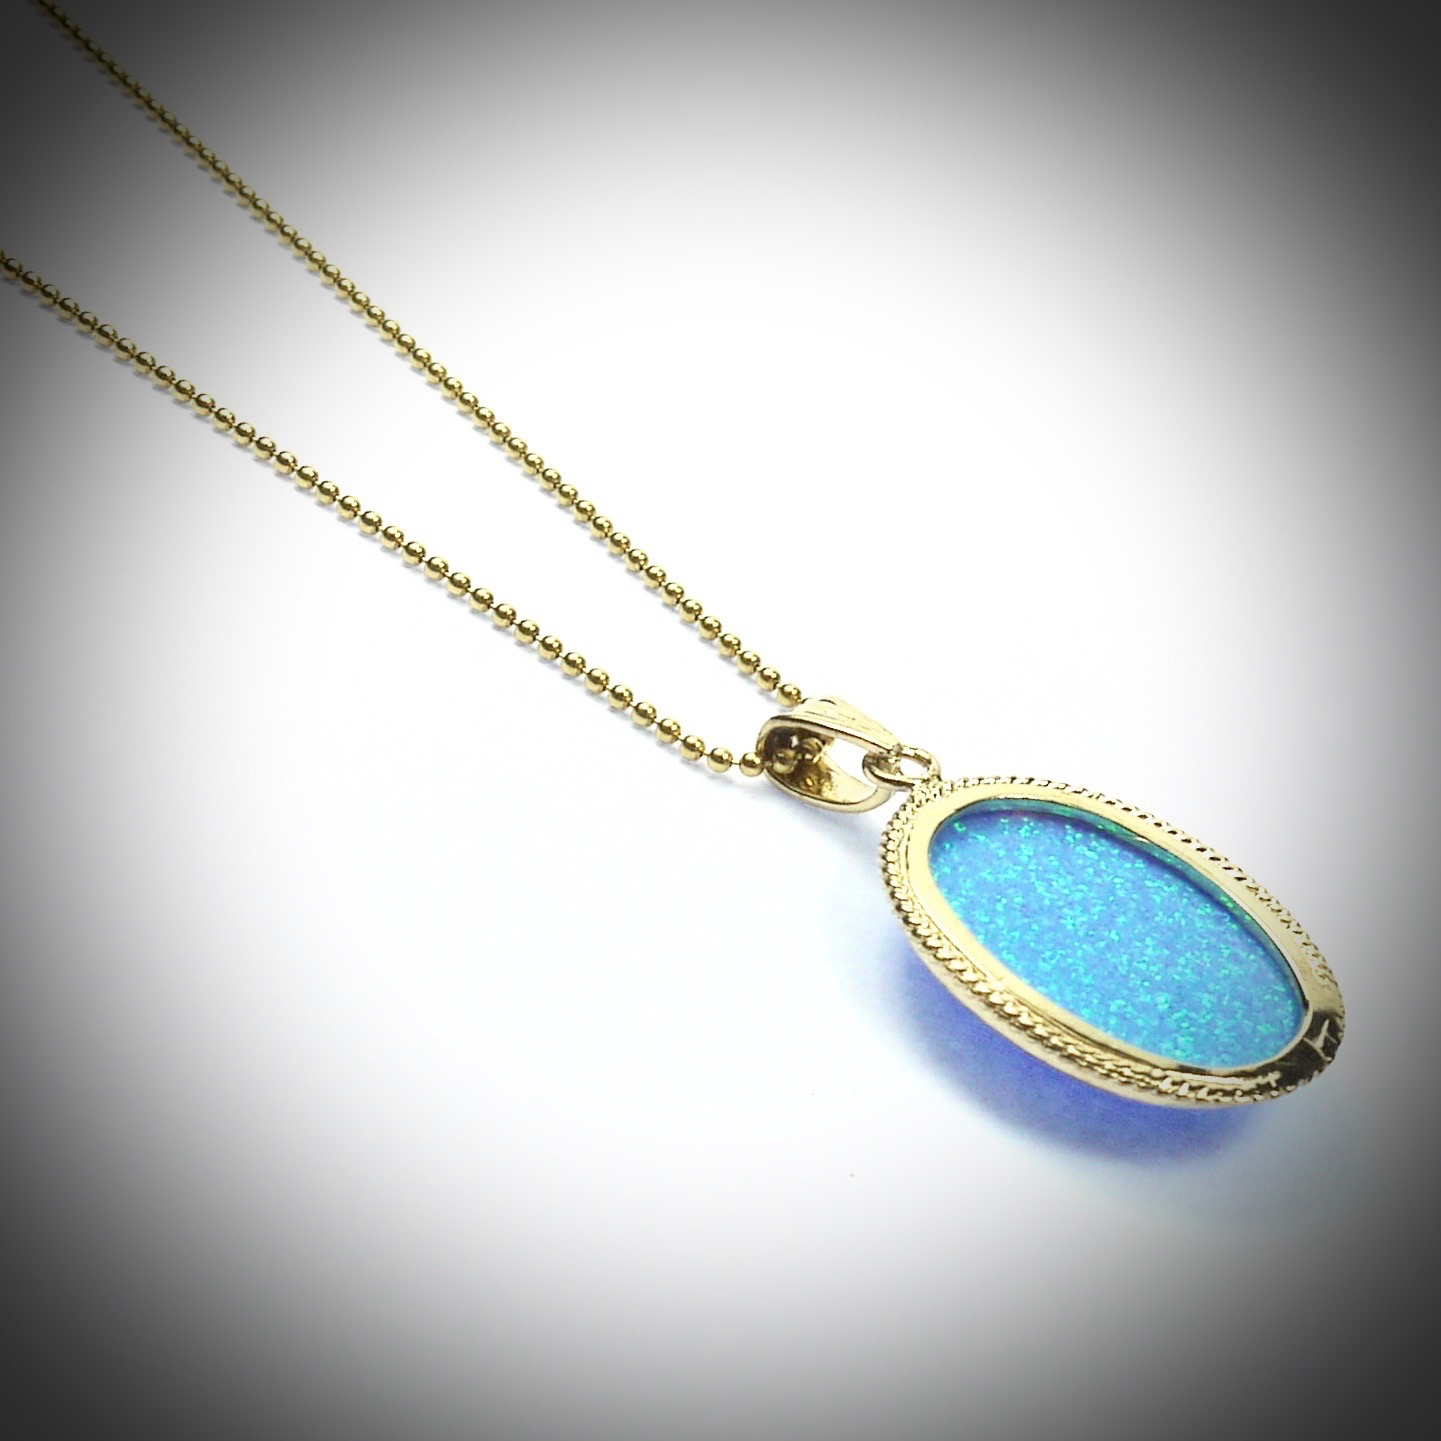 pendant necklace sterling rakuten product blue opal for created lab shop fire mabella mabellajewelry women silver gift